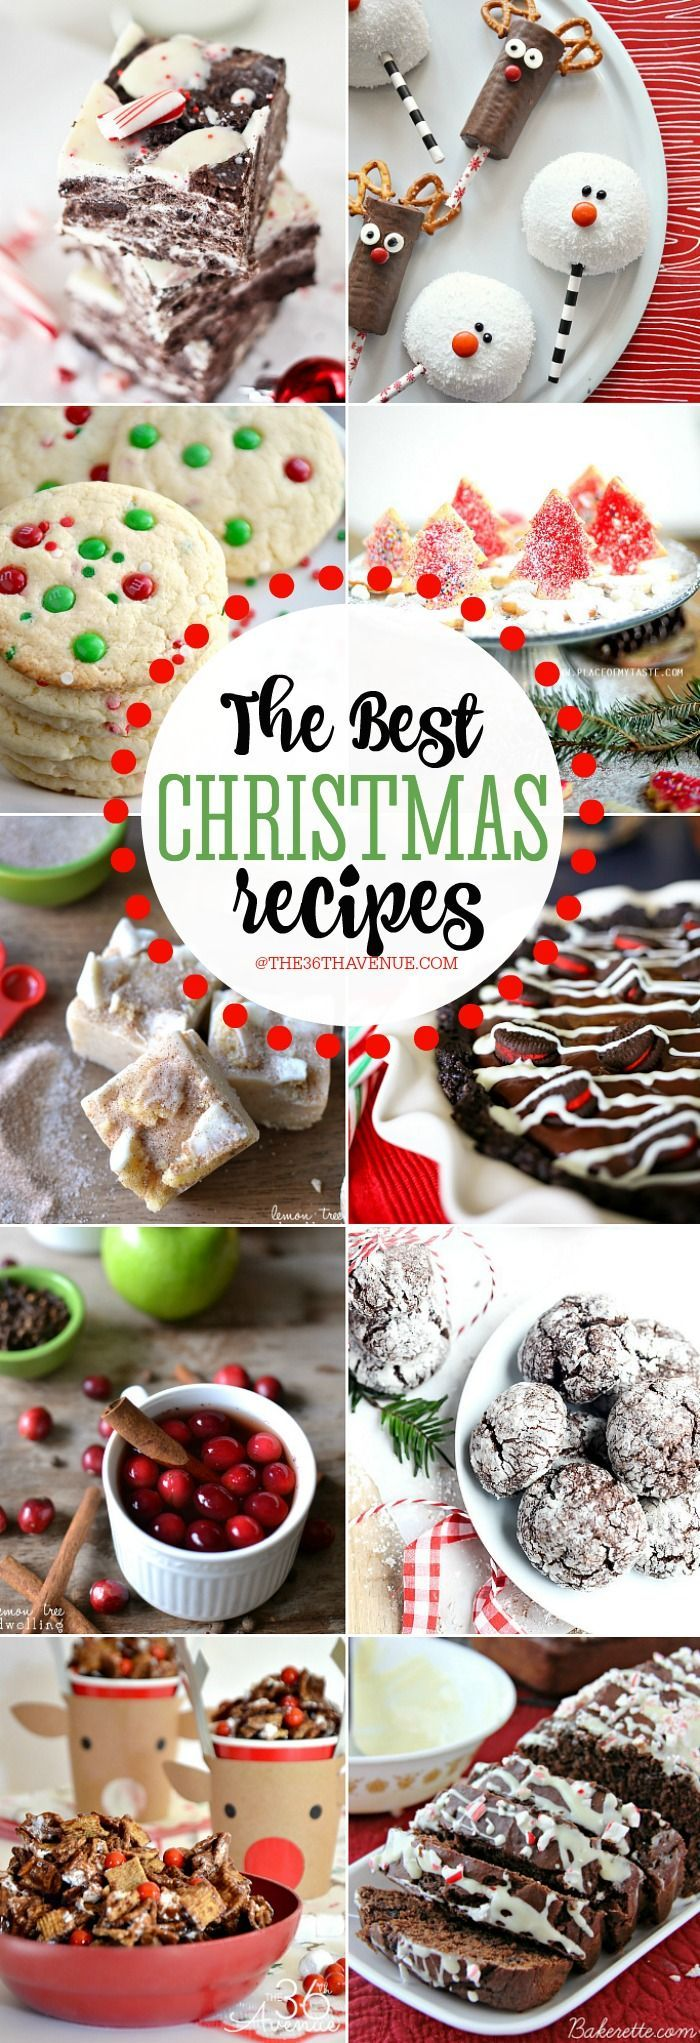 The Best Christmas Recipes | Dessert recipes, Snacks and Gift